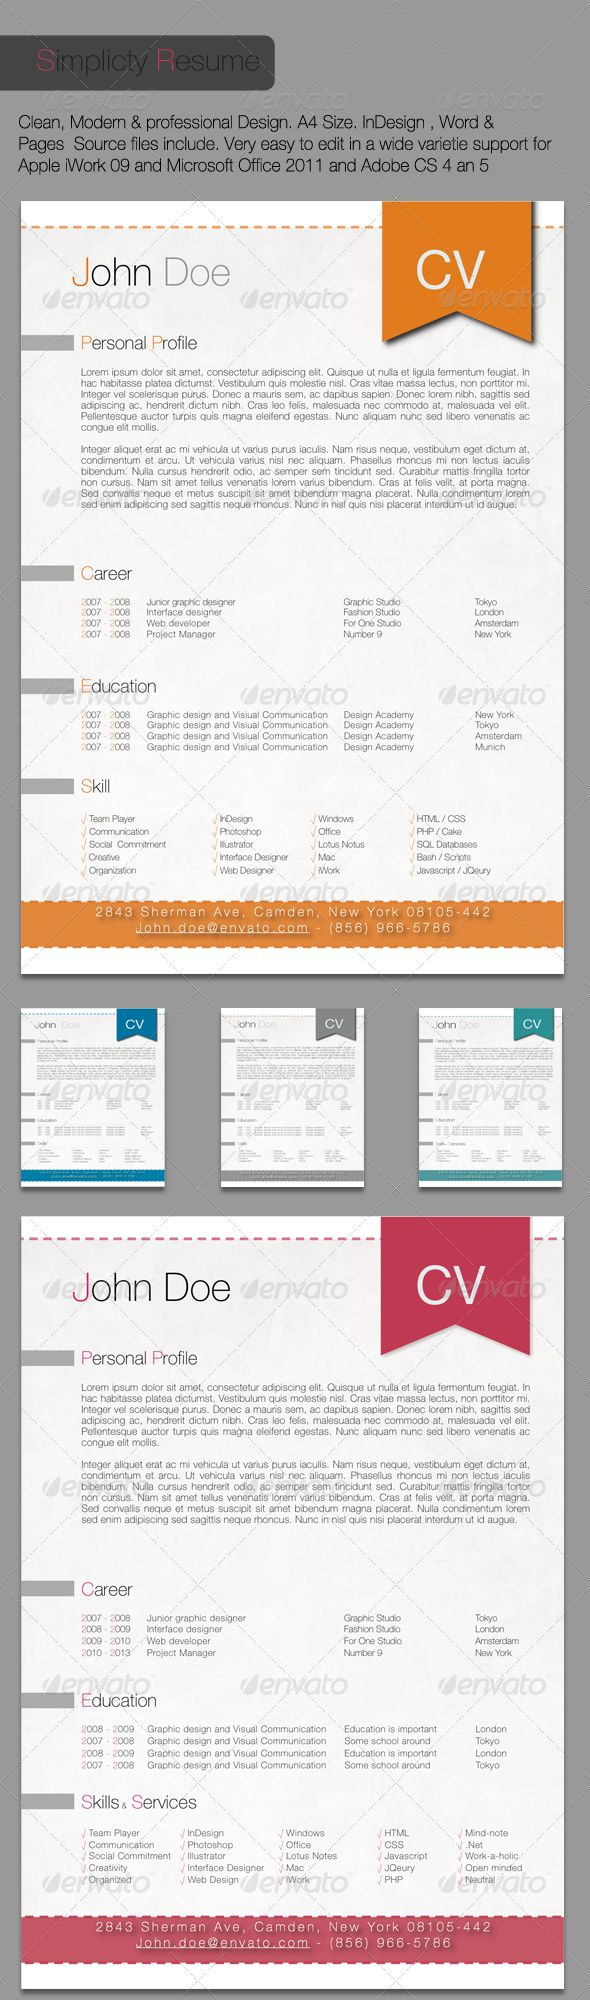 best images about resume inspiration creative simplicity resume